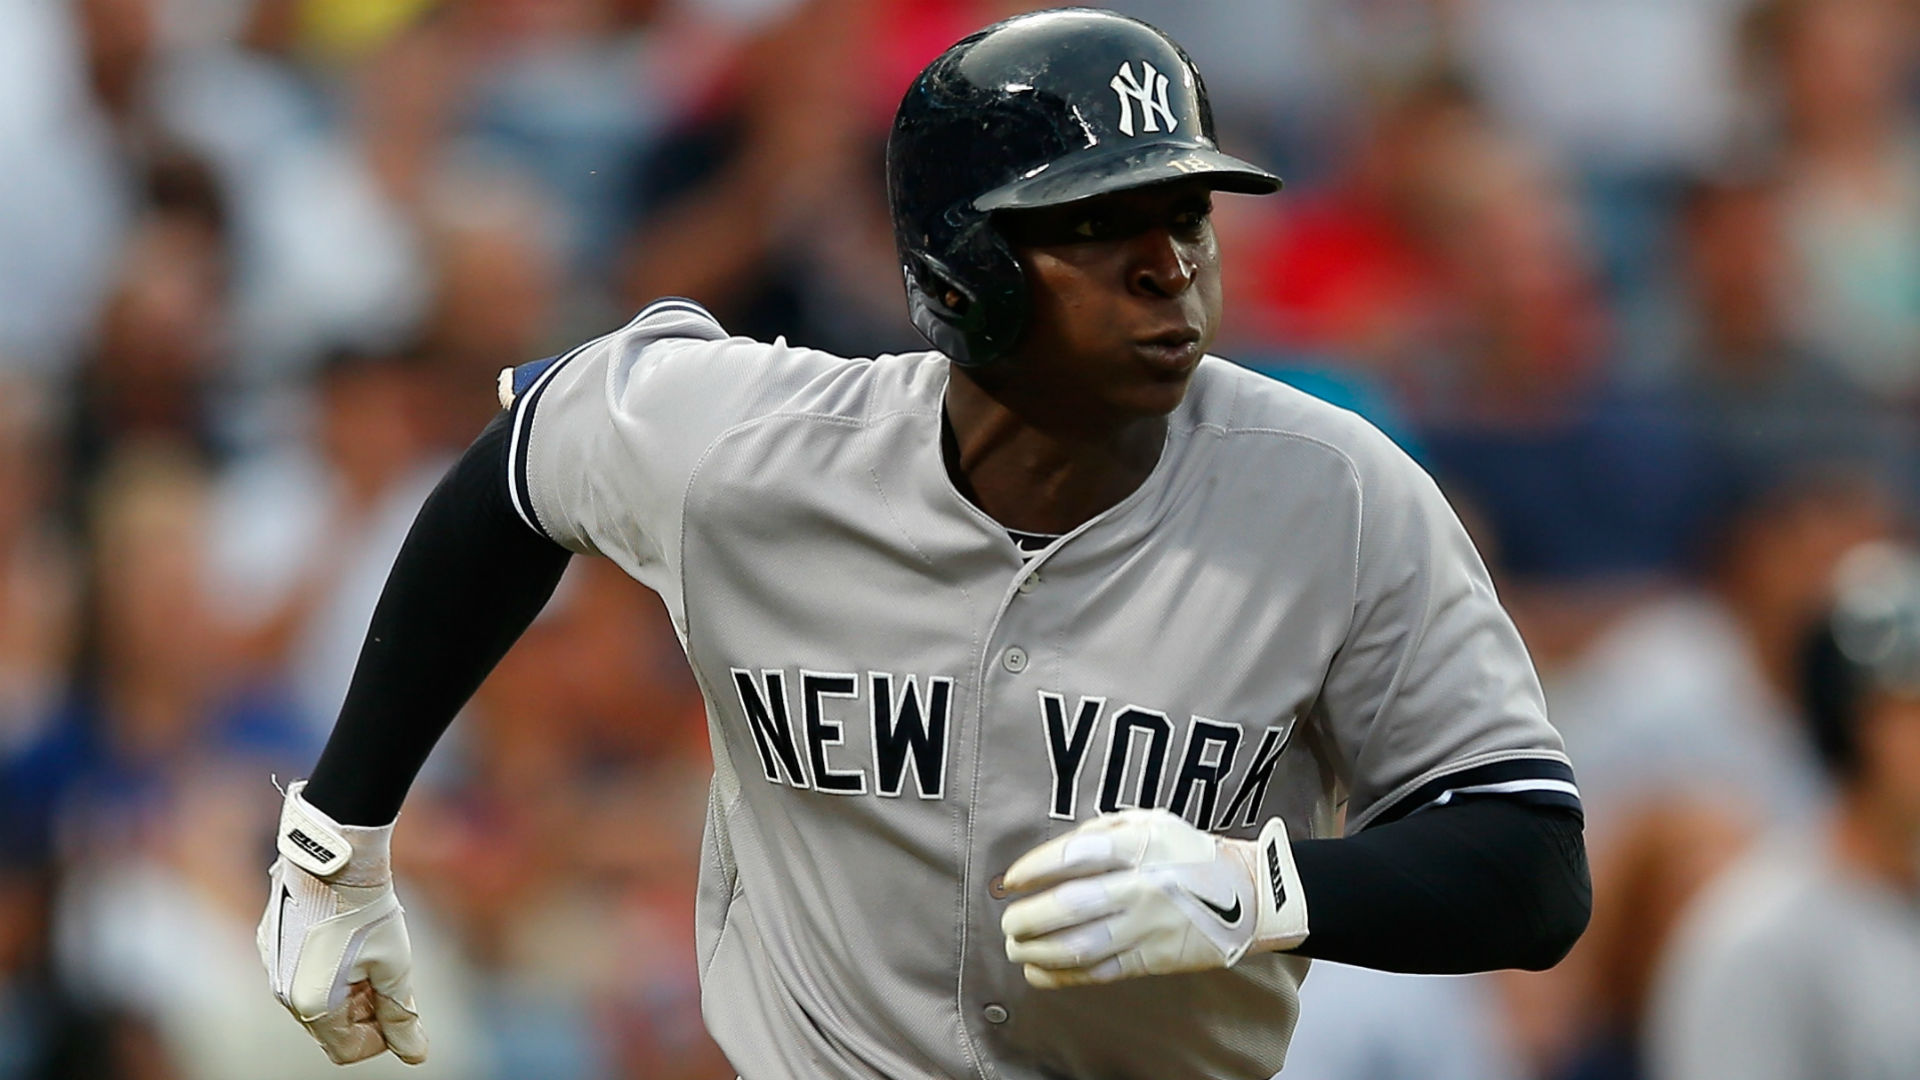 Yankees' Didi Gregorius to miss six weeks with shoulder injury